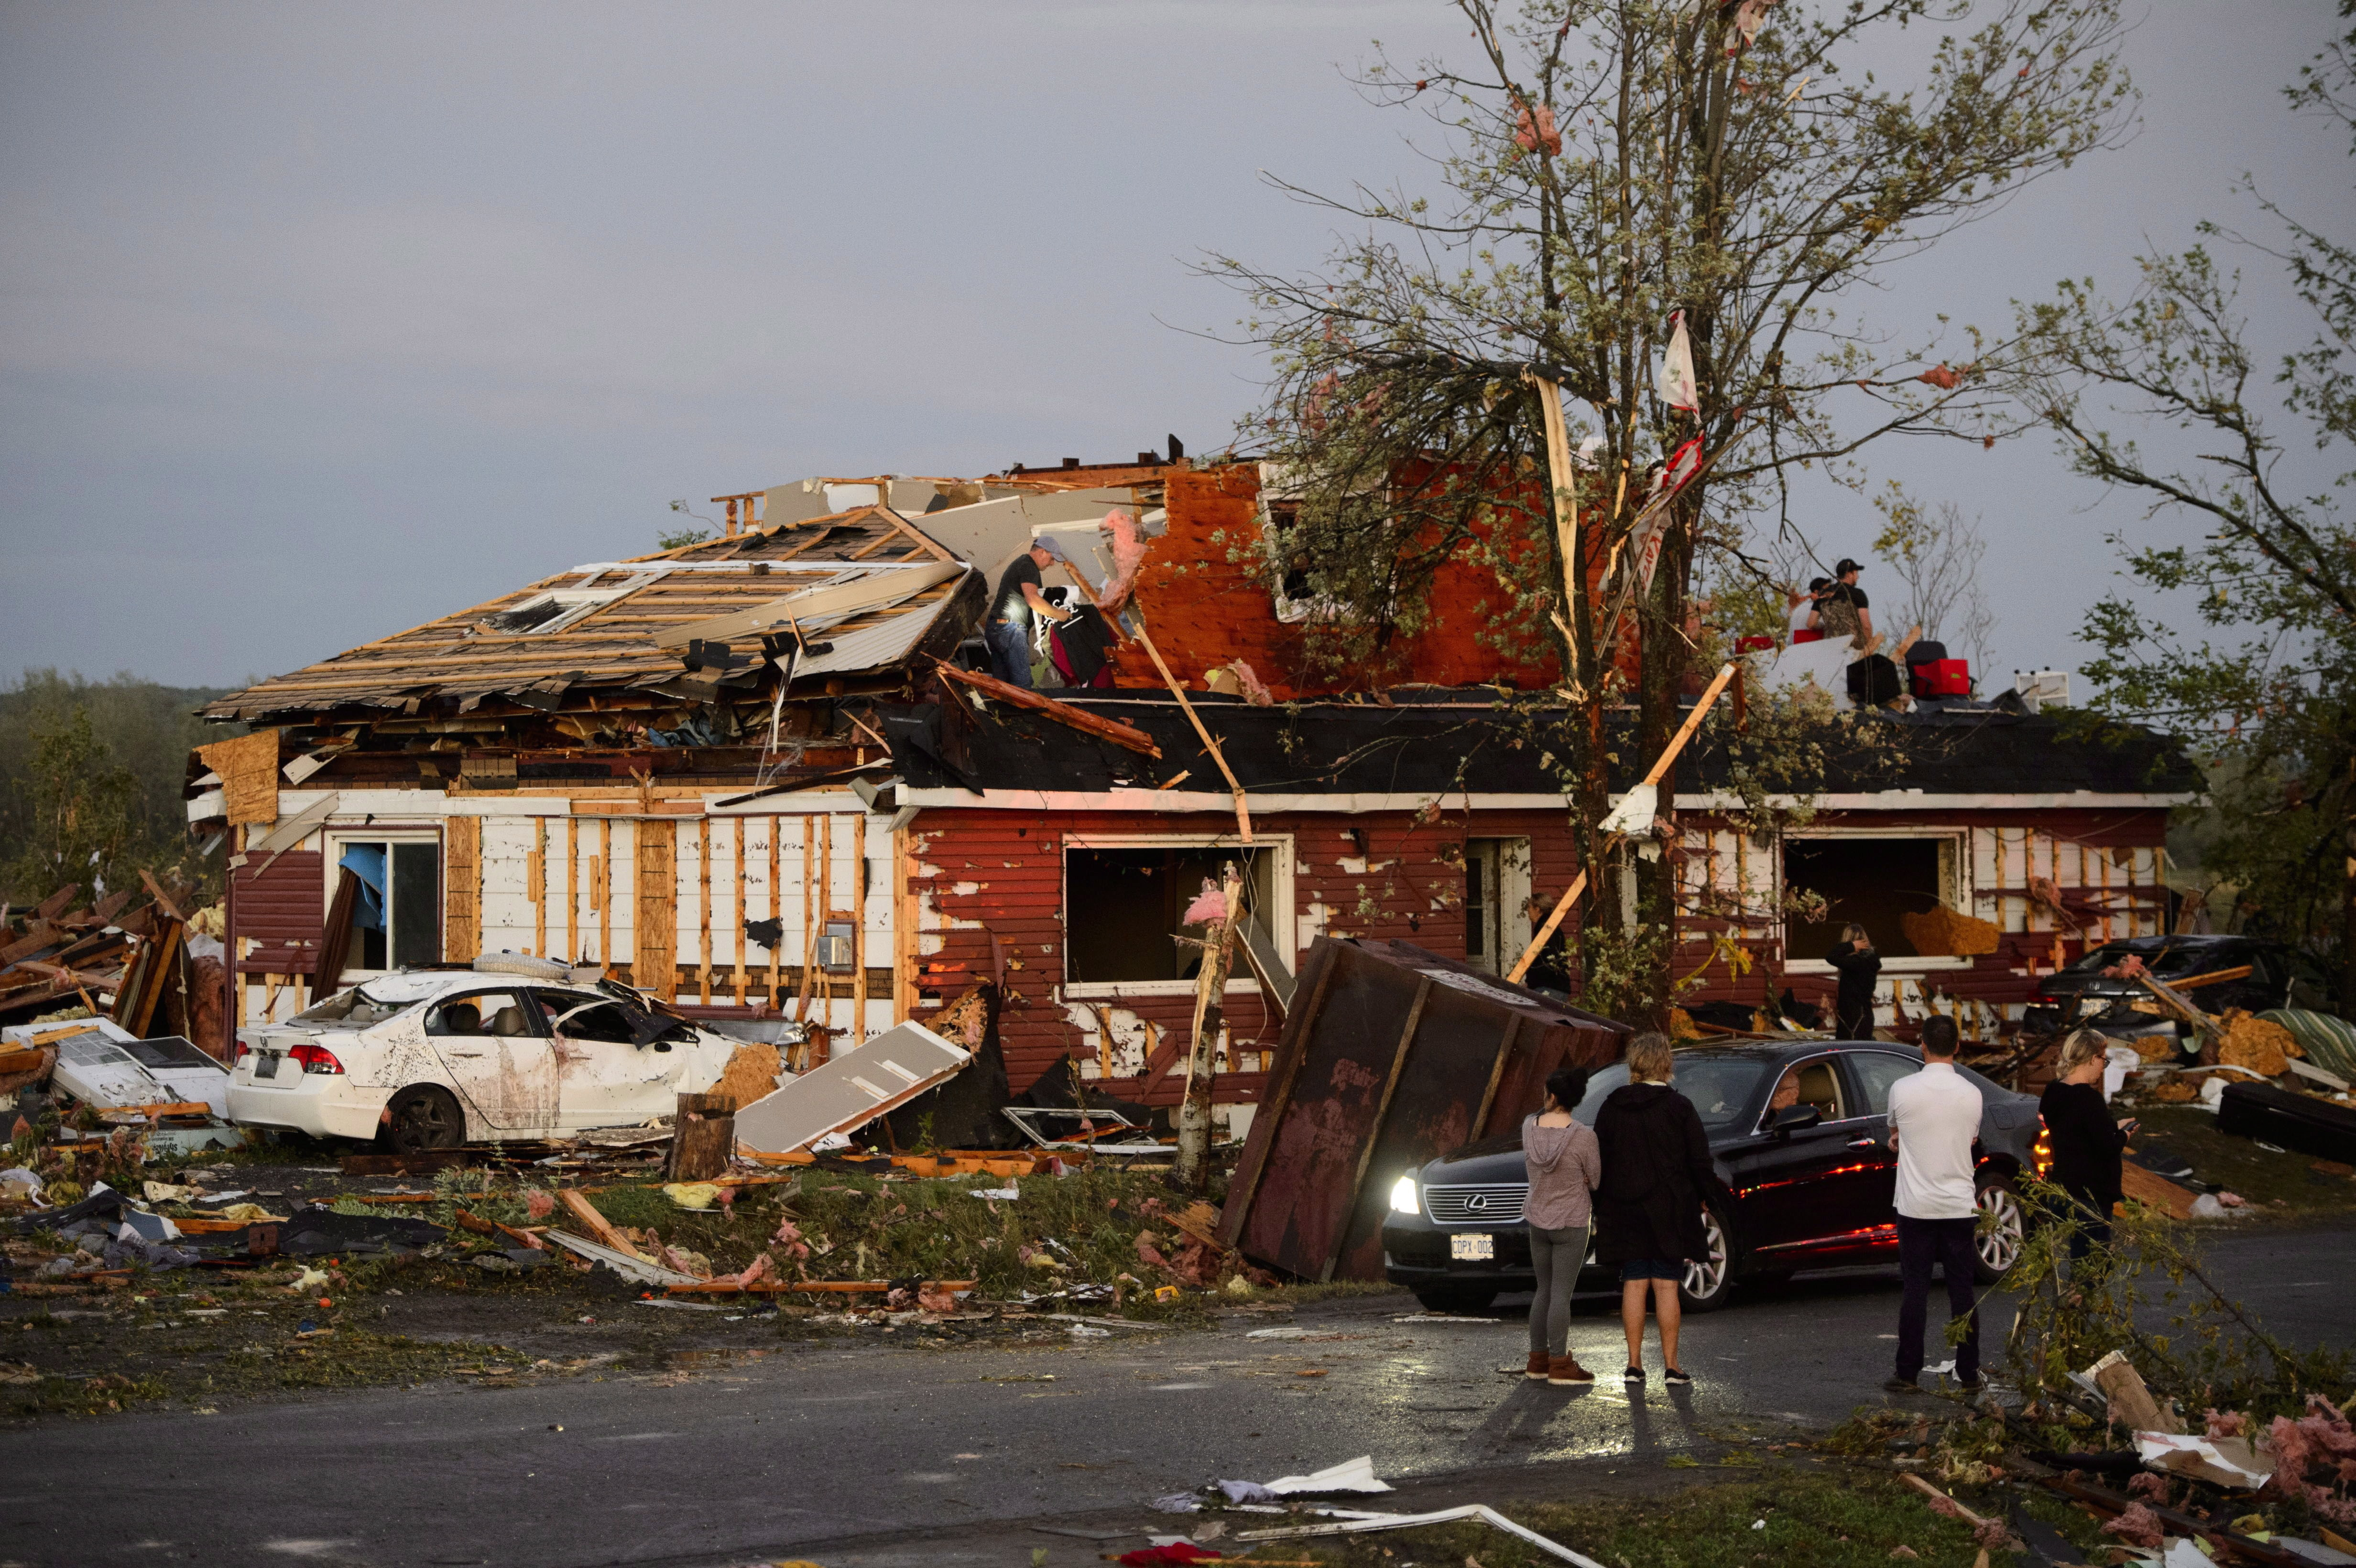 A group of people gather to inspect the damage caused by the tornado that hit Dunrobin. (Sean Kilpatrick/Canadian Press)